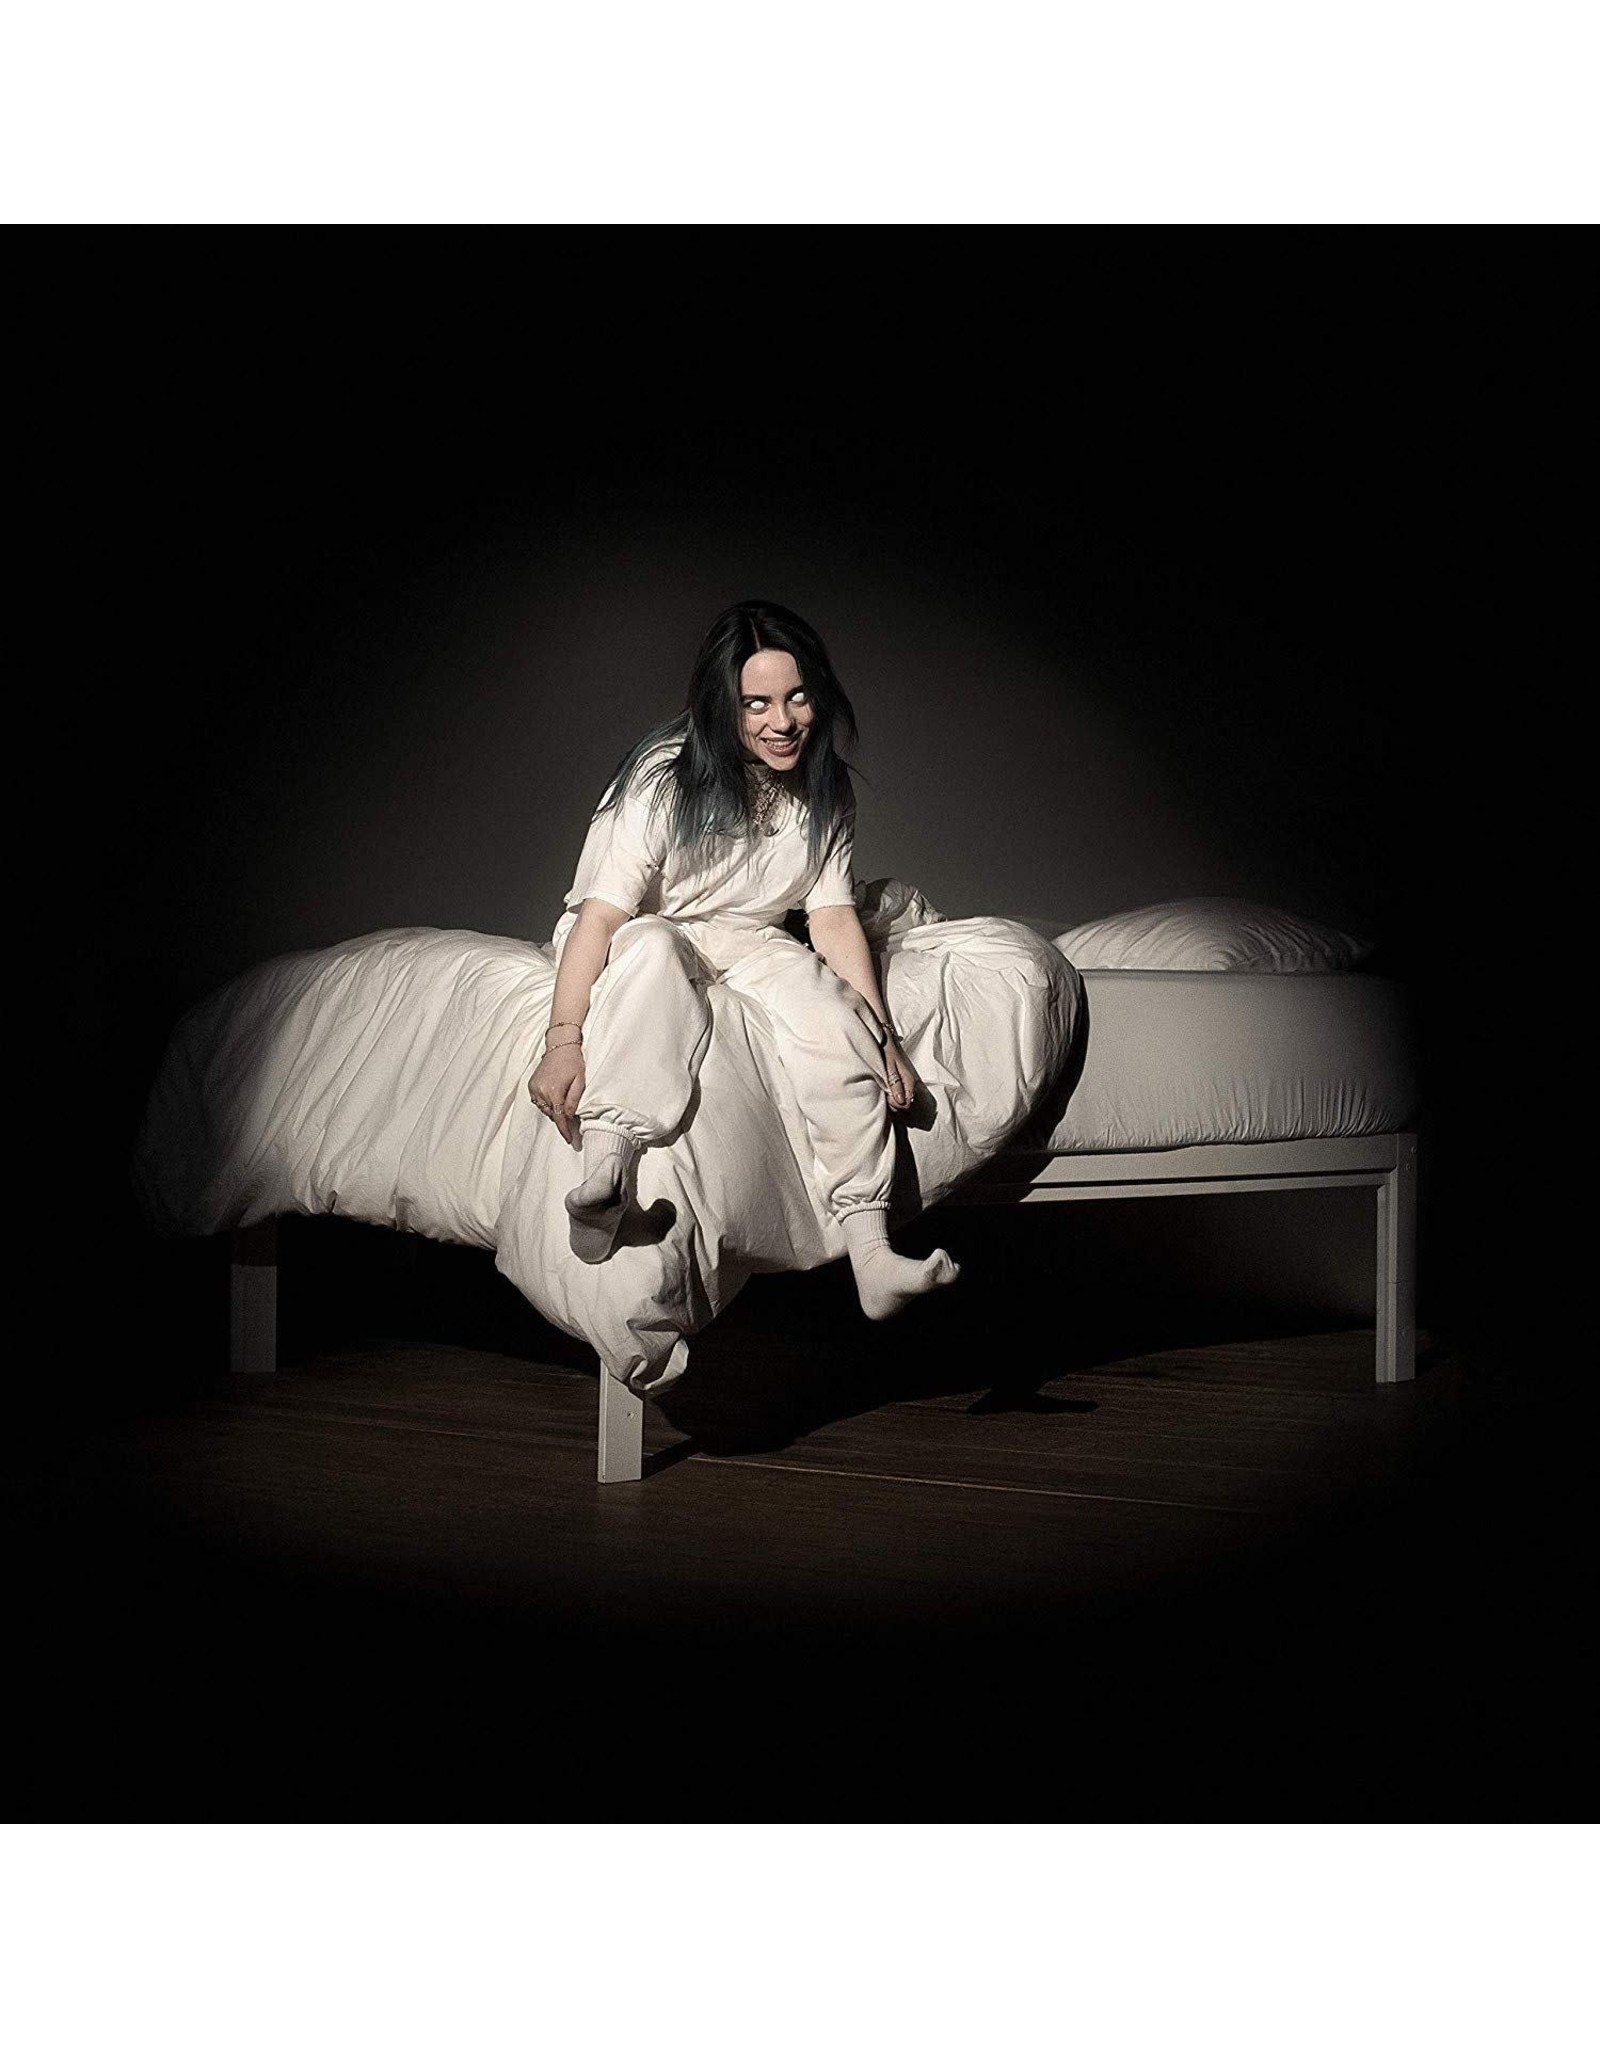 Billie Eilish - When We Fall Asleep, Where Do We Go? (Yellow Vinyl)